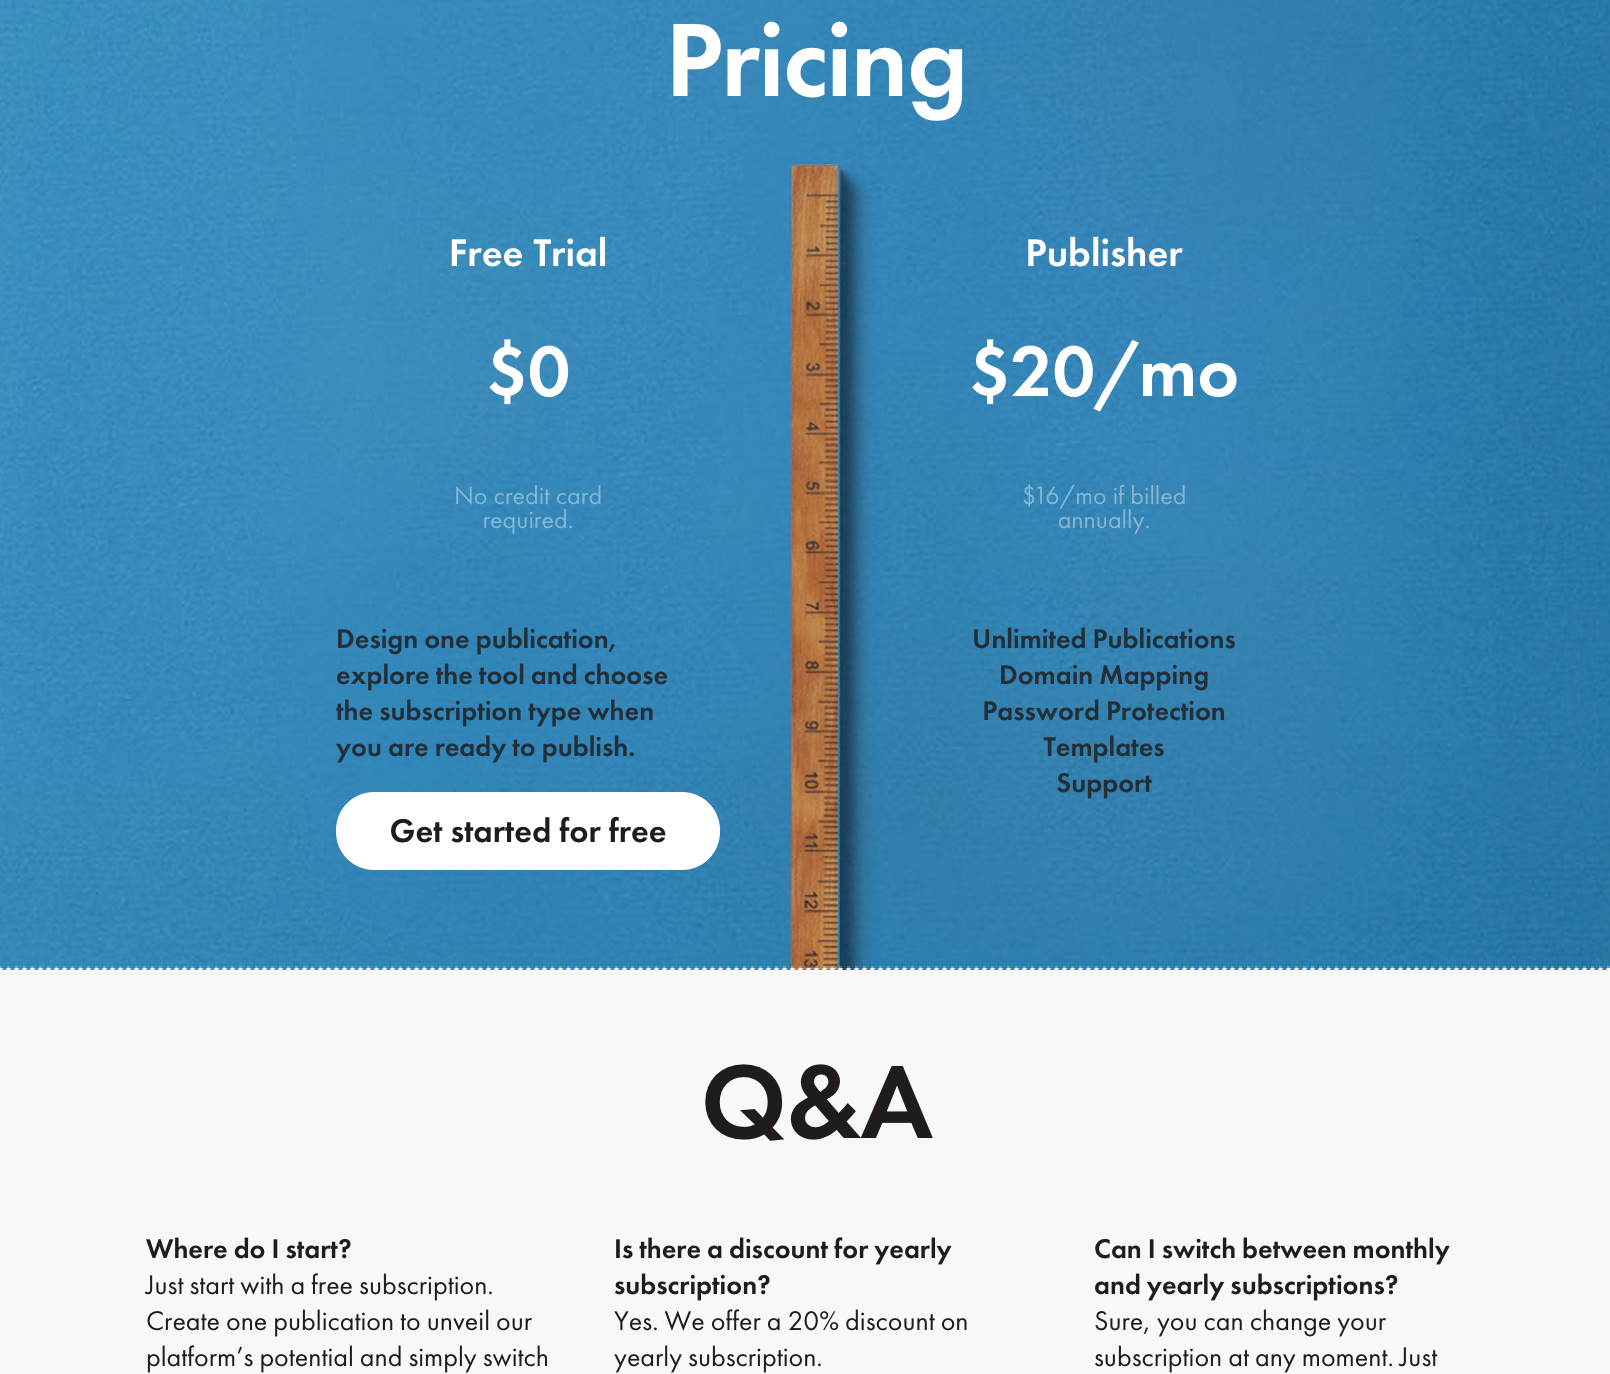 FAQs on pricing